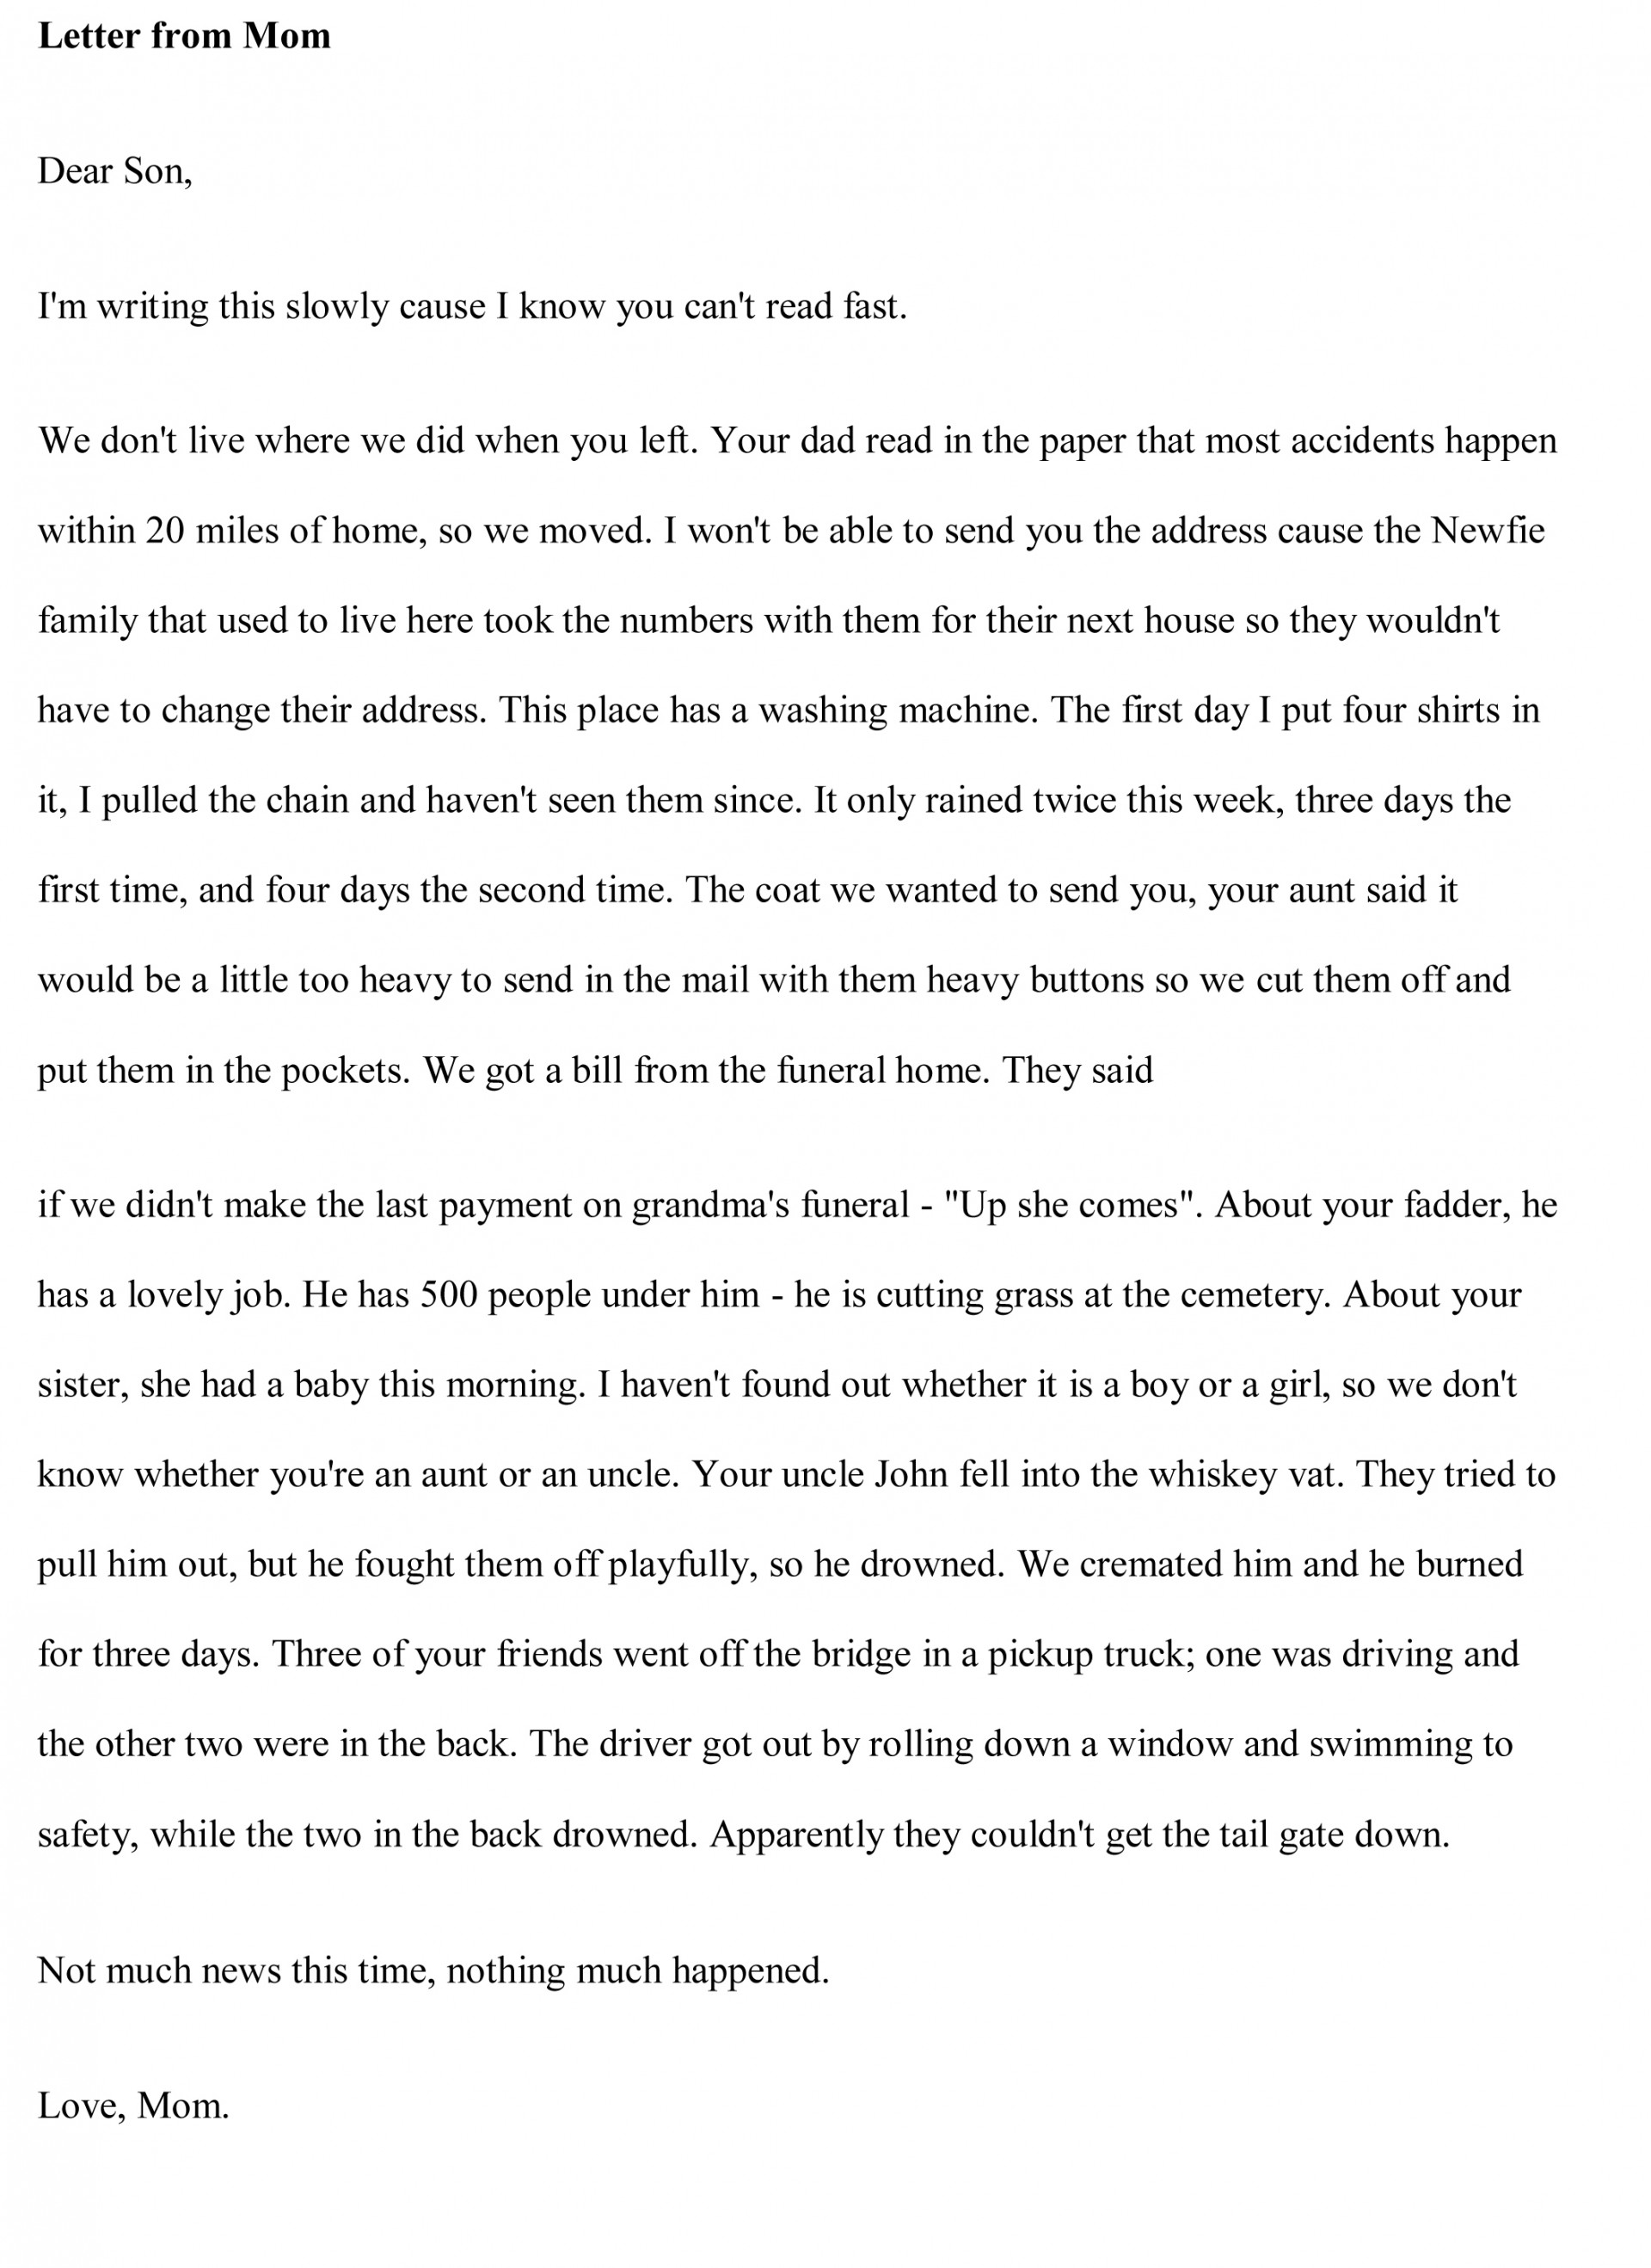 009 Funny Essay Free Sample Example What Is An Top Informative The Main Purpose Of 1920